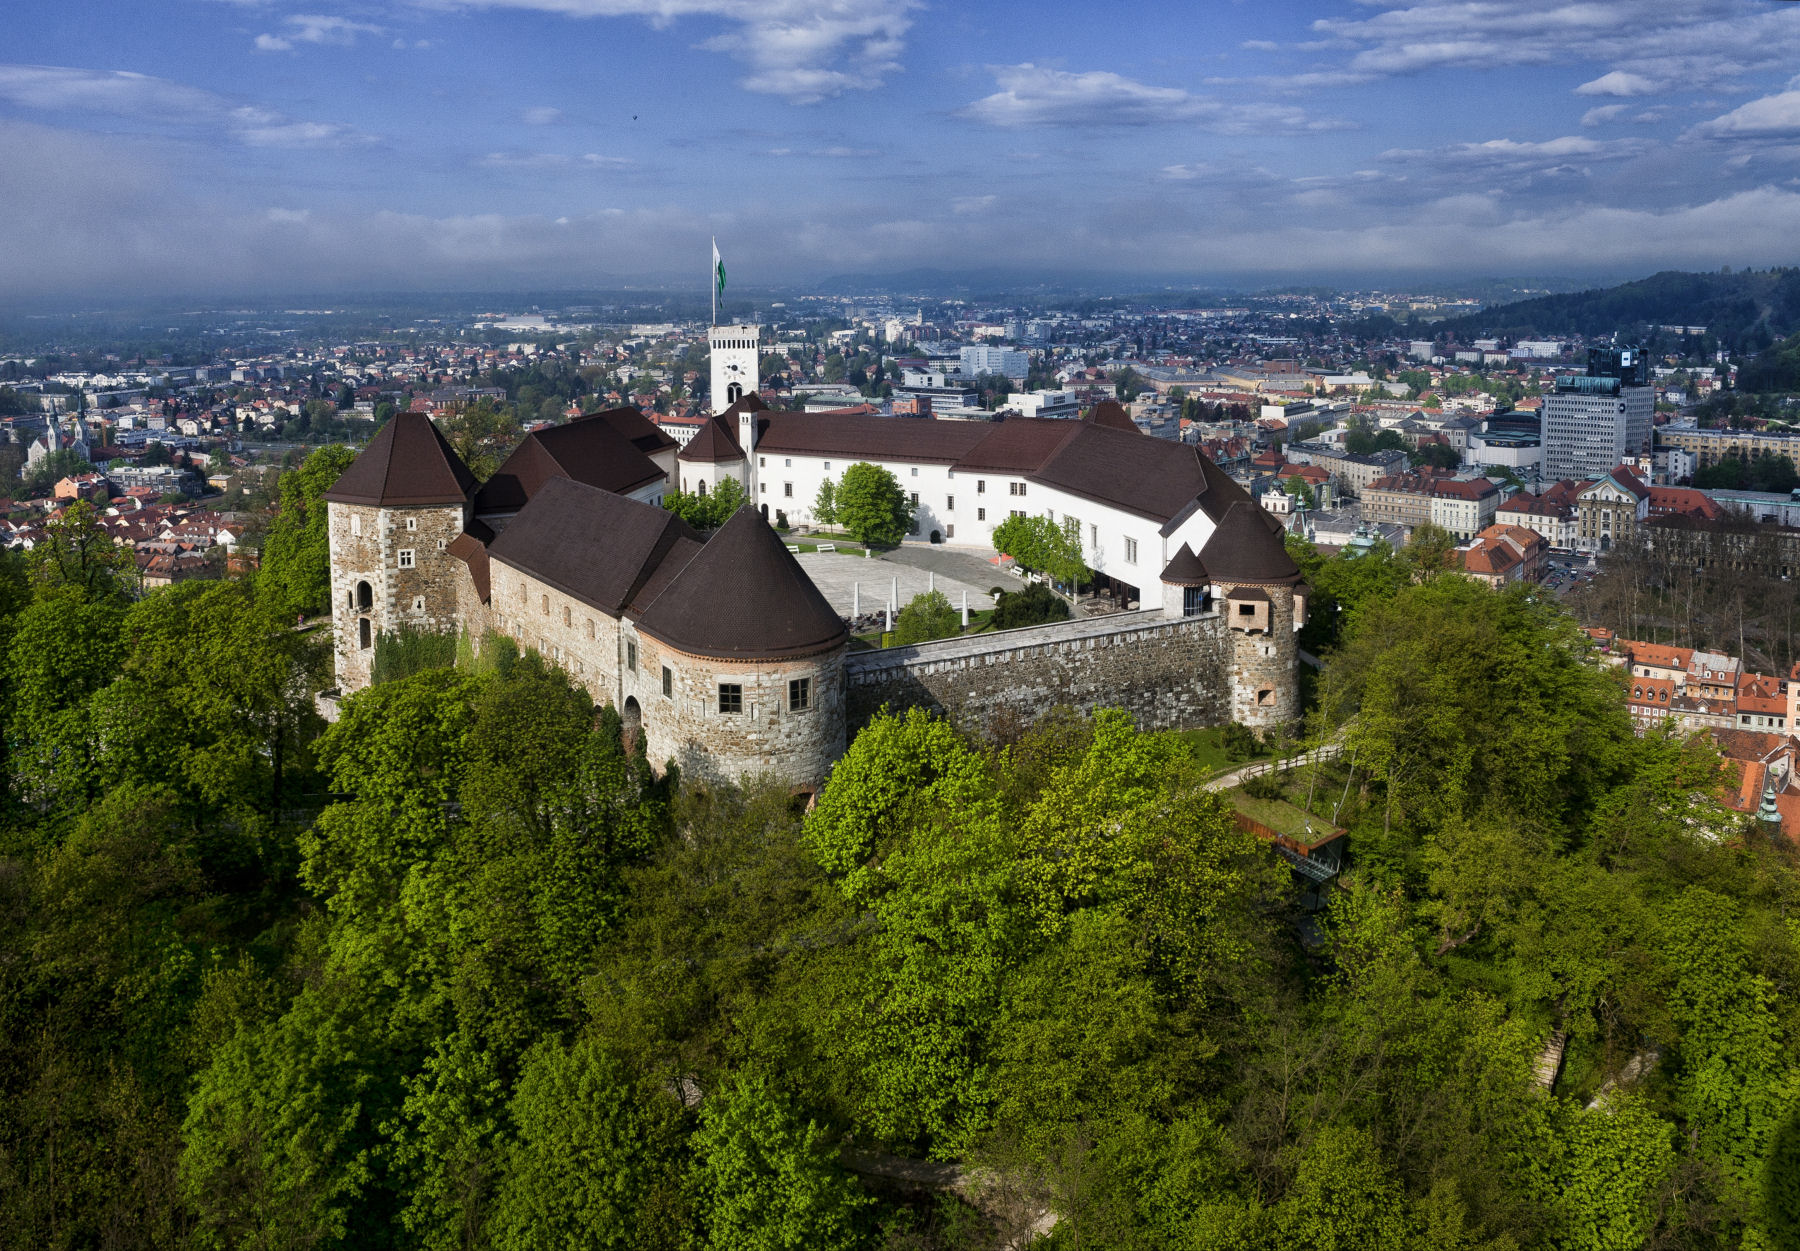 Ljubljana castle in the capital of Slovenia